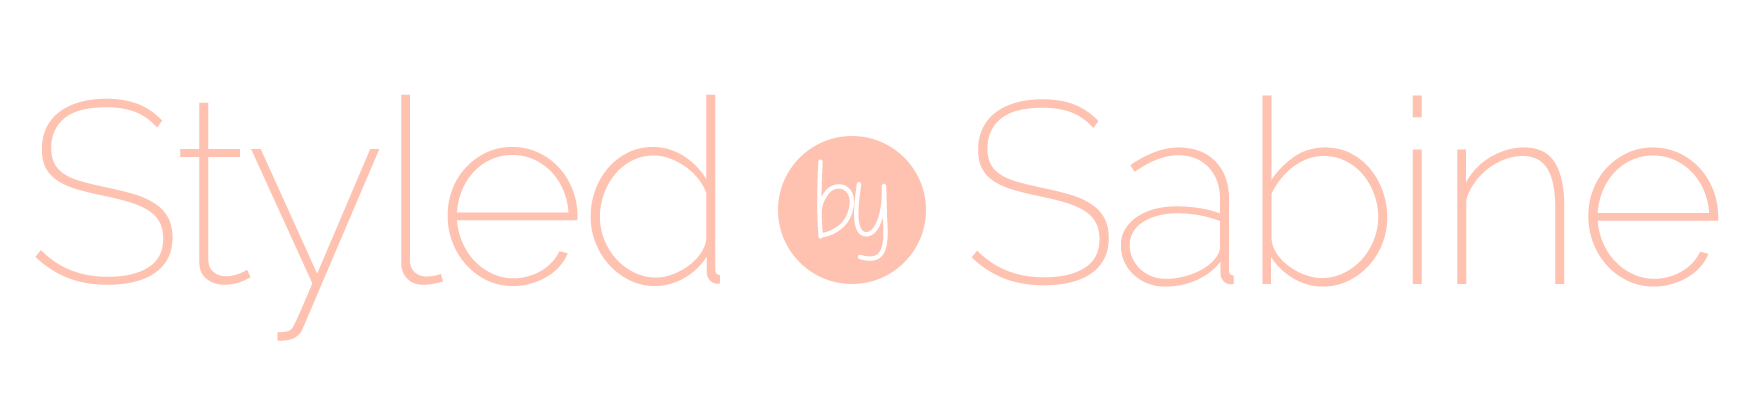 Styled by Sabine Mobile Logo